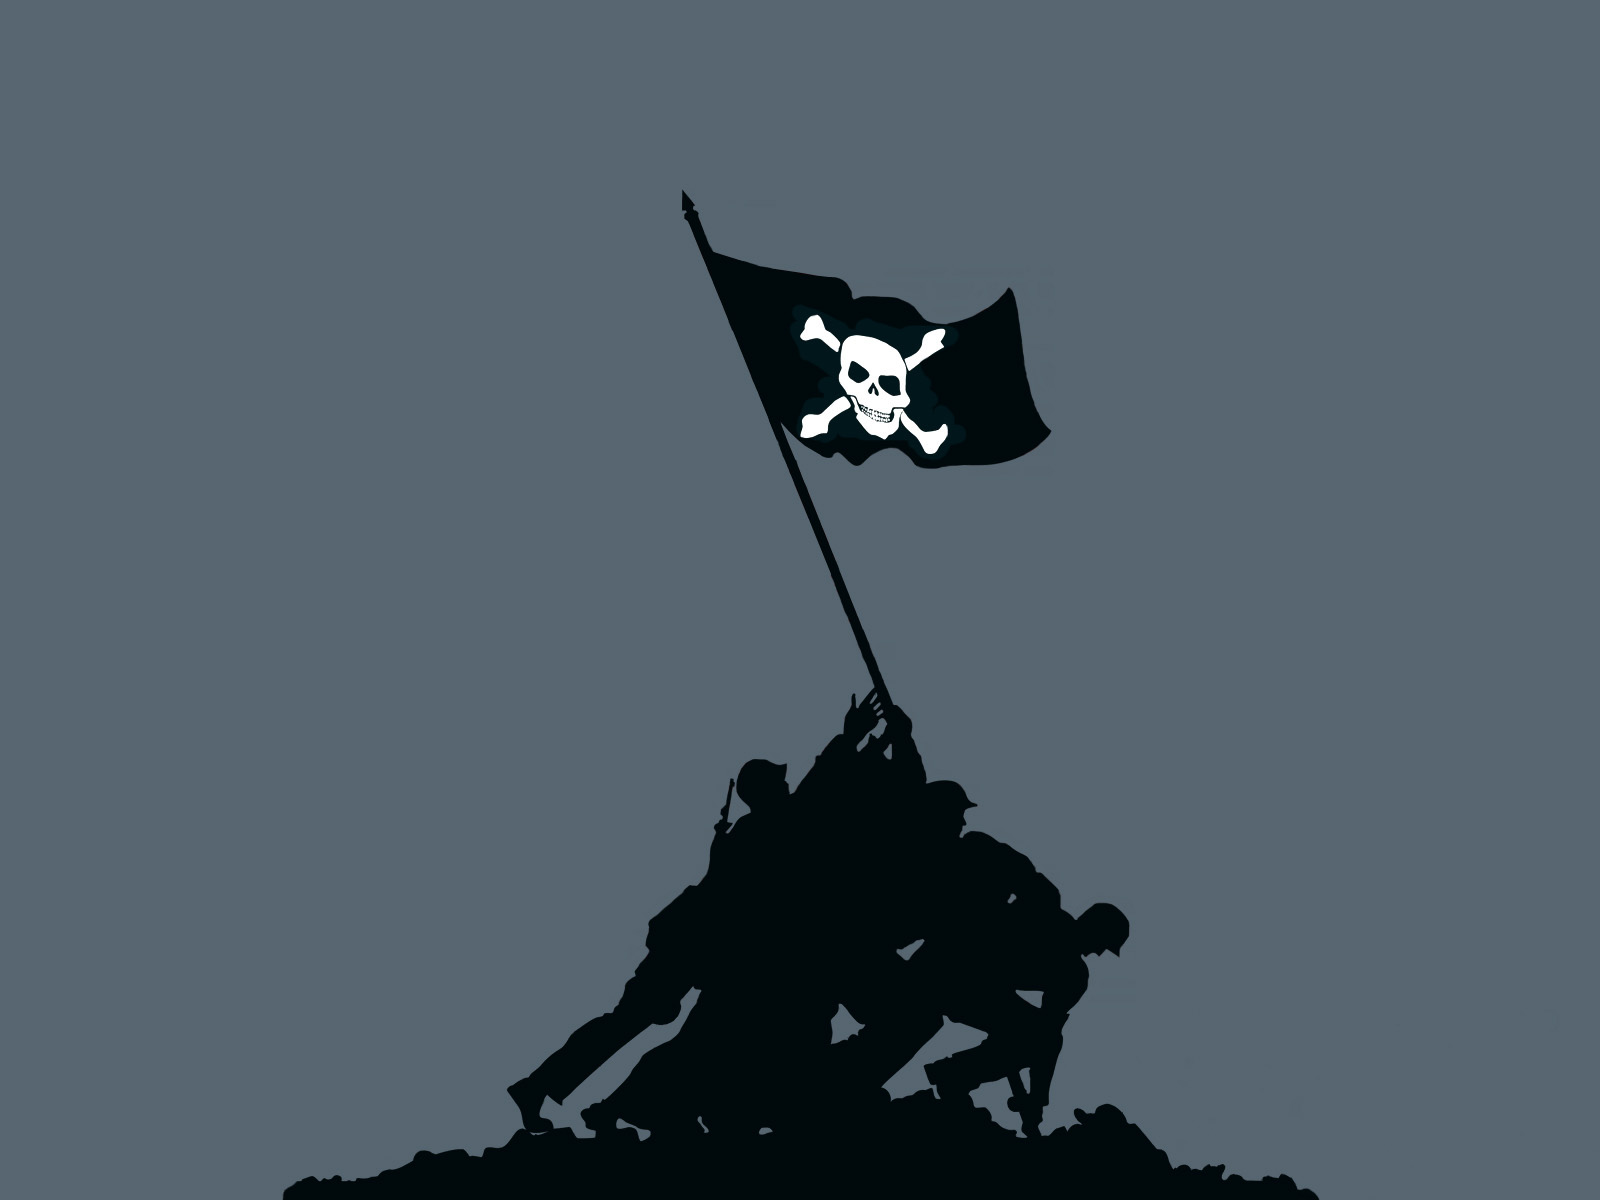 http://4.bp.blogspot.com/-mferxLkY7m0/TlirDP_l5eI/AAAAAAAACvU/lkybfGTQ5eI/s1600/www.Vvallpaper.net_pirate_flag_hacker_theme_desktop_Wallpaper_hack_background_soldier_logo_.jpg